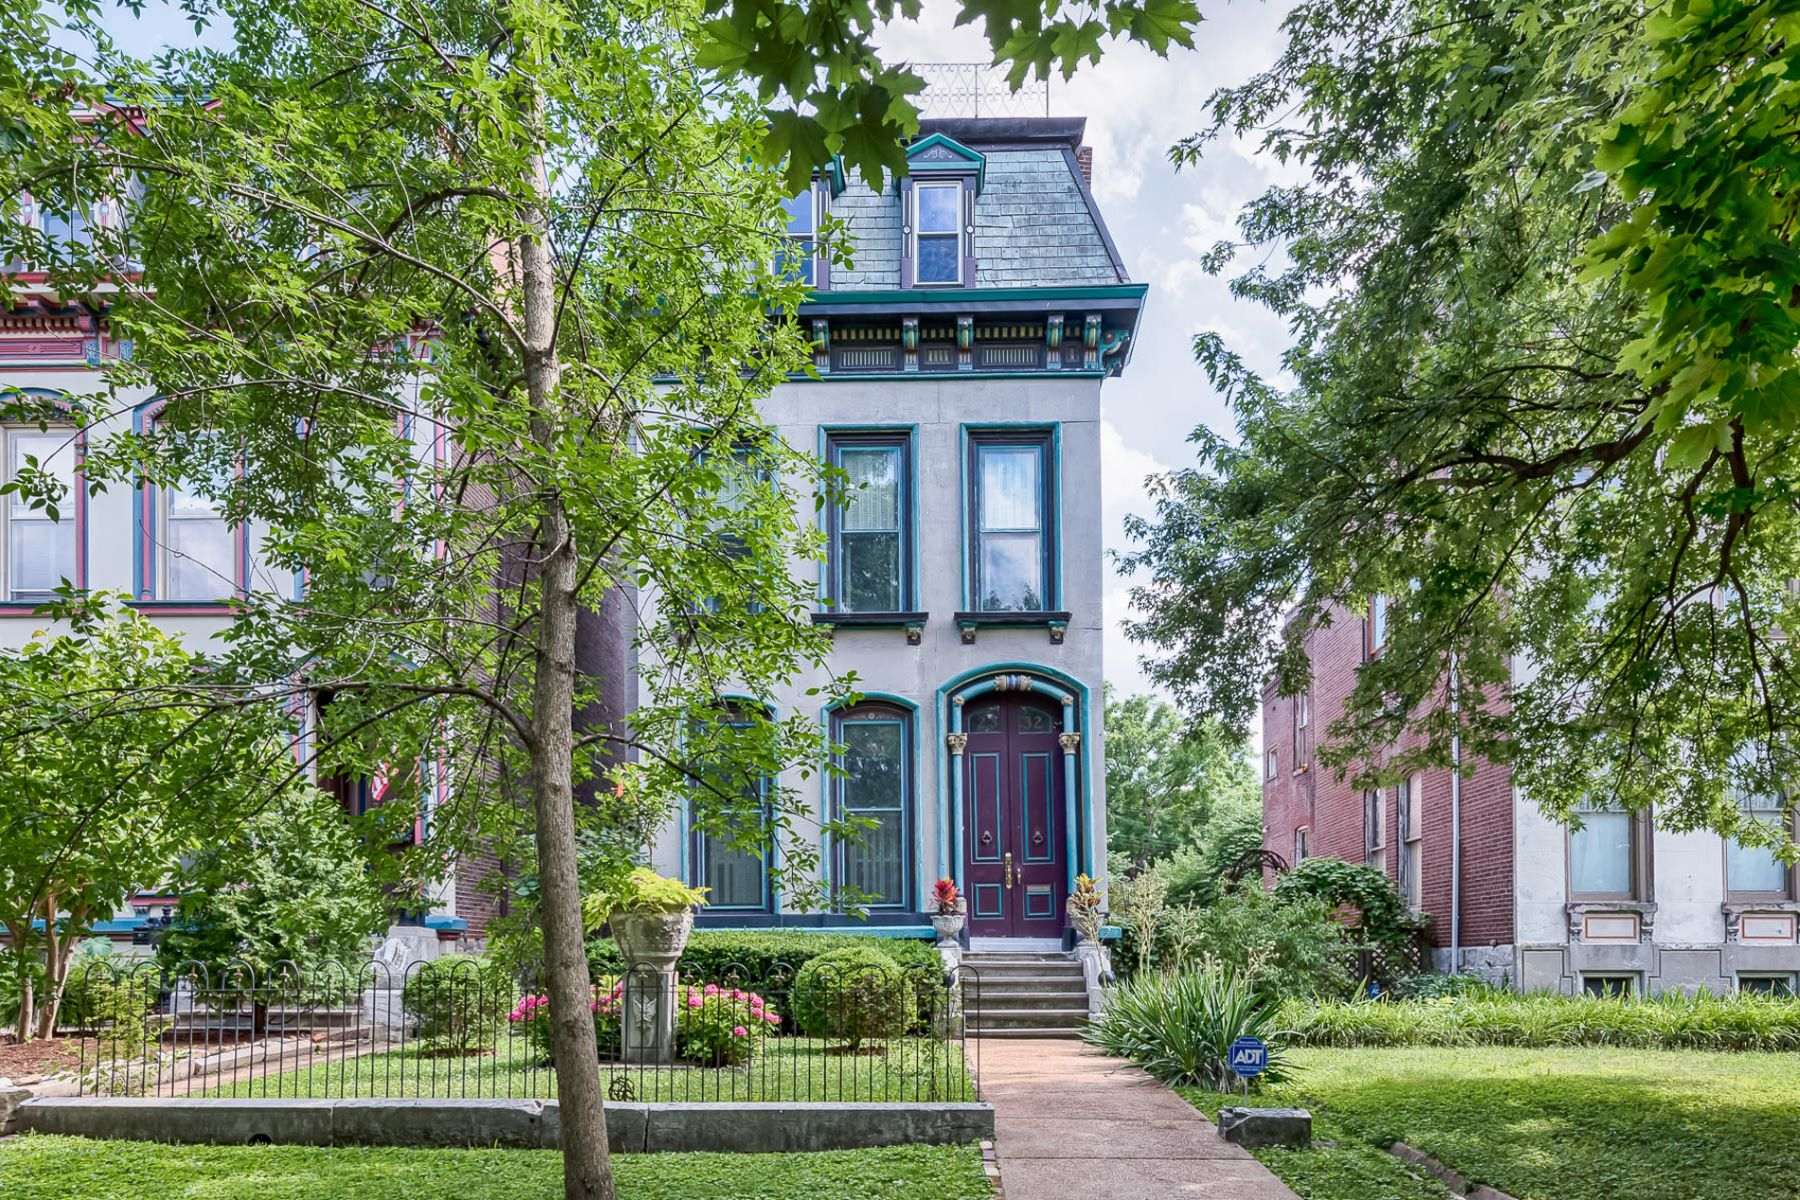 Single Family Home for Sale at Park Ave 2332 Park Ave St. Louis, Missouri 63104 United States